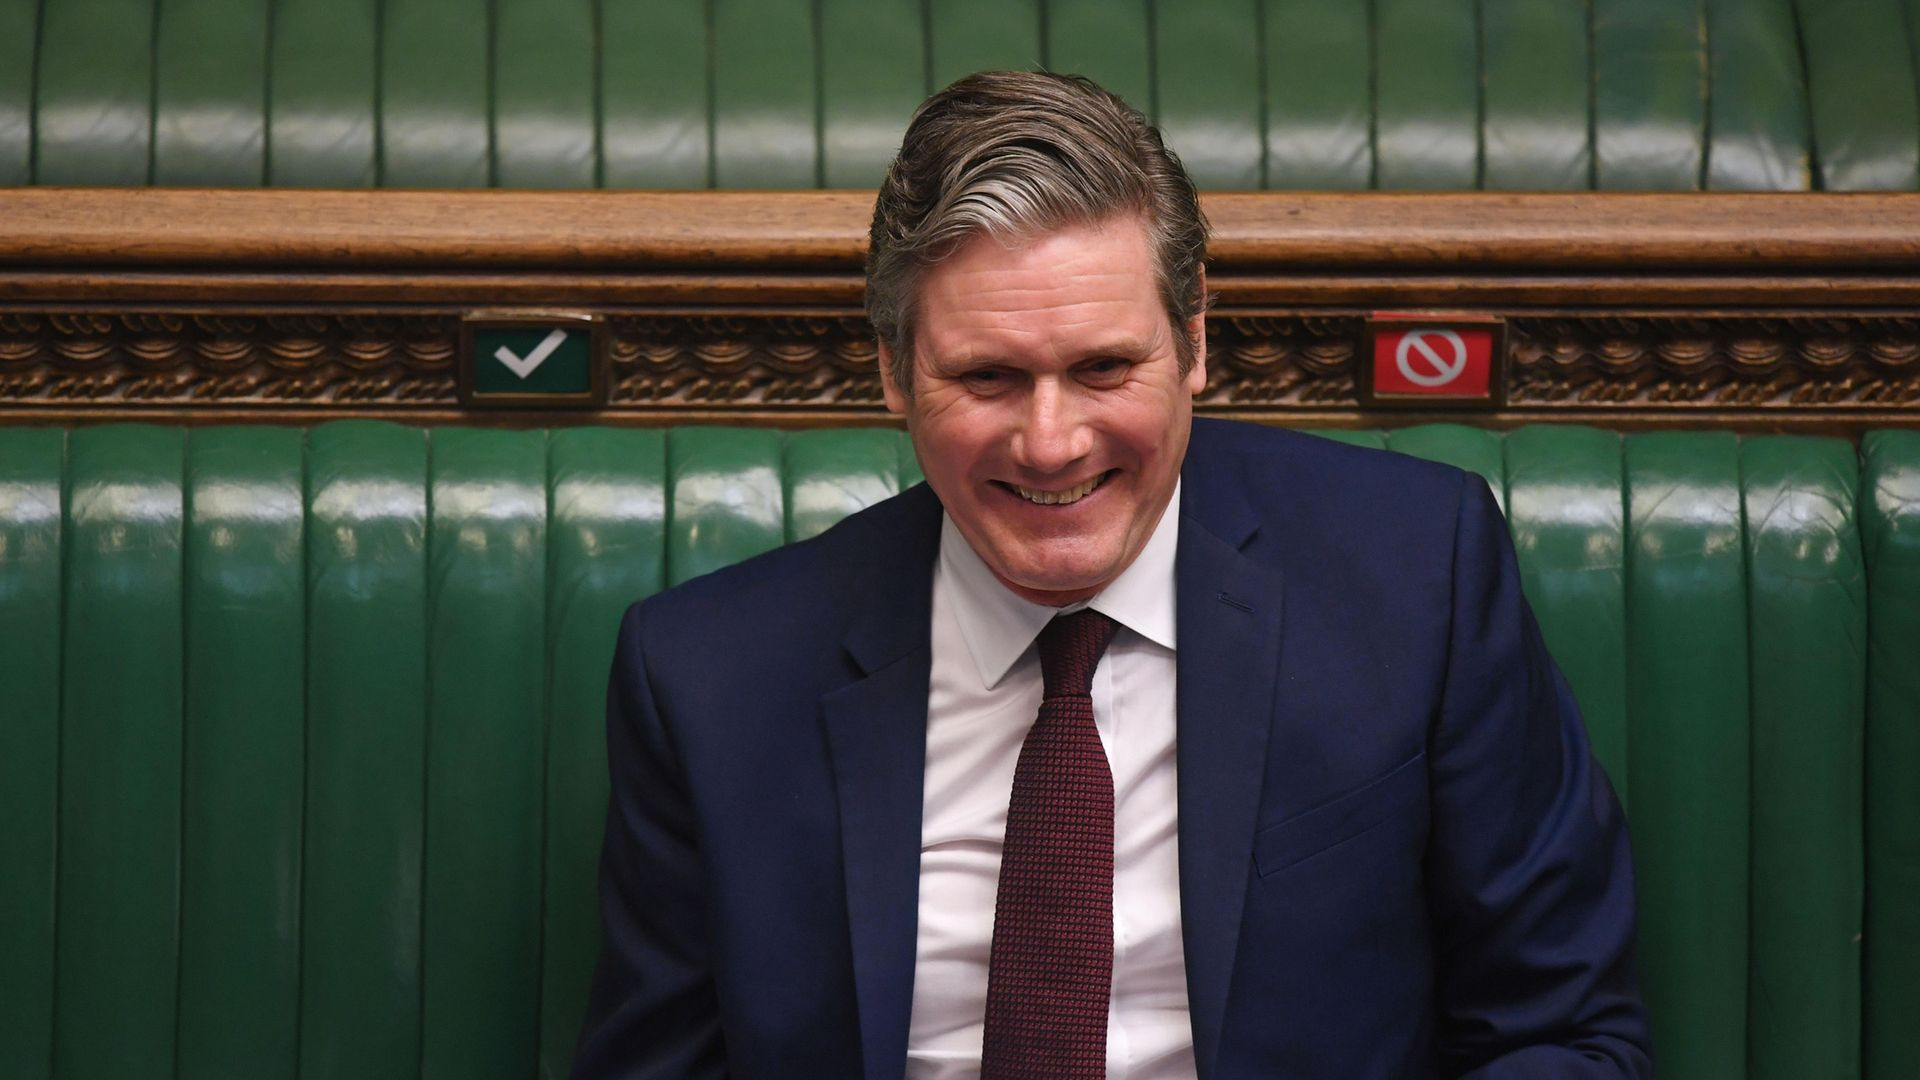 Sir Keir Starmer in the House of Commons - Credit: PA